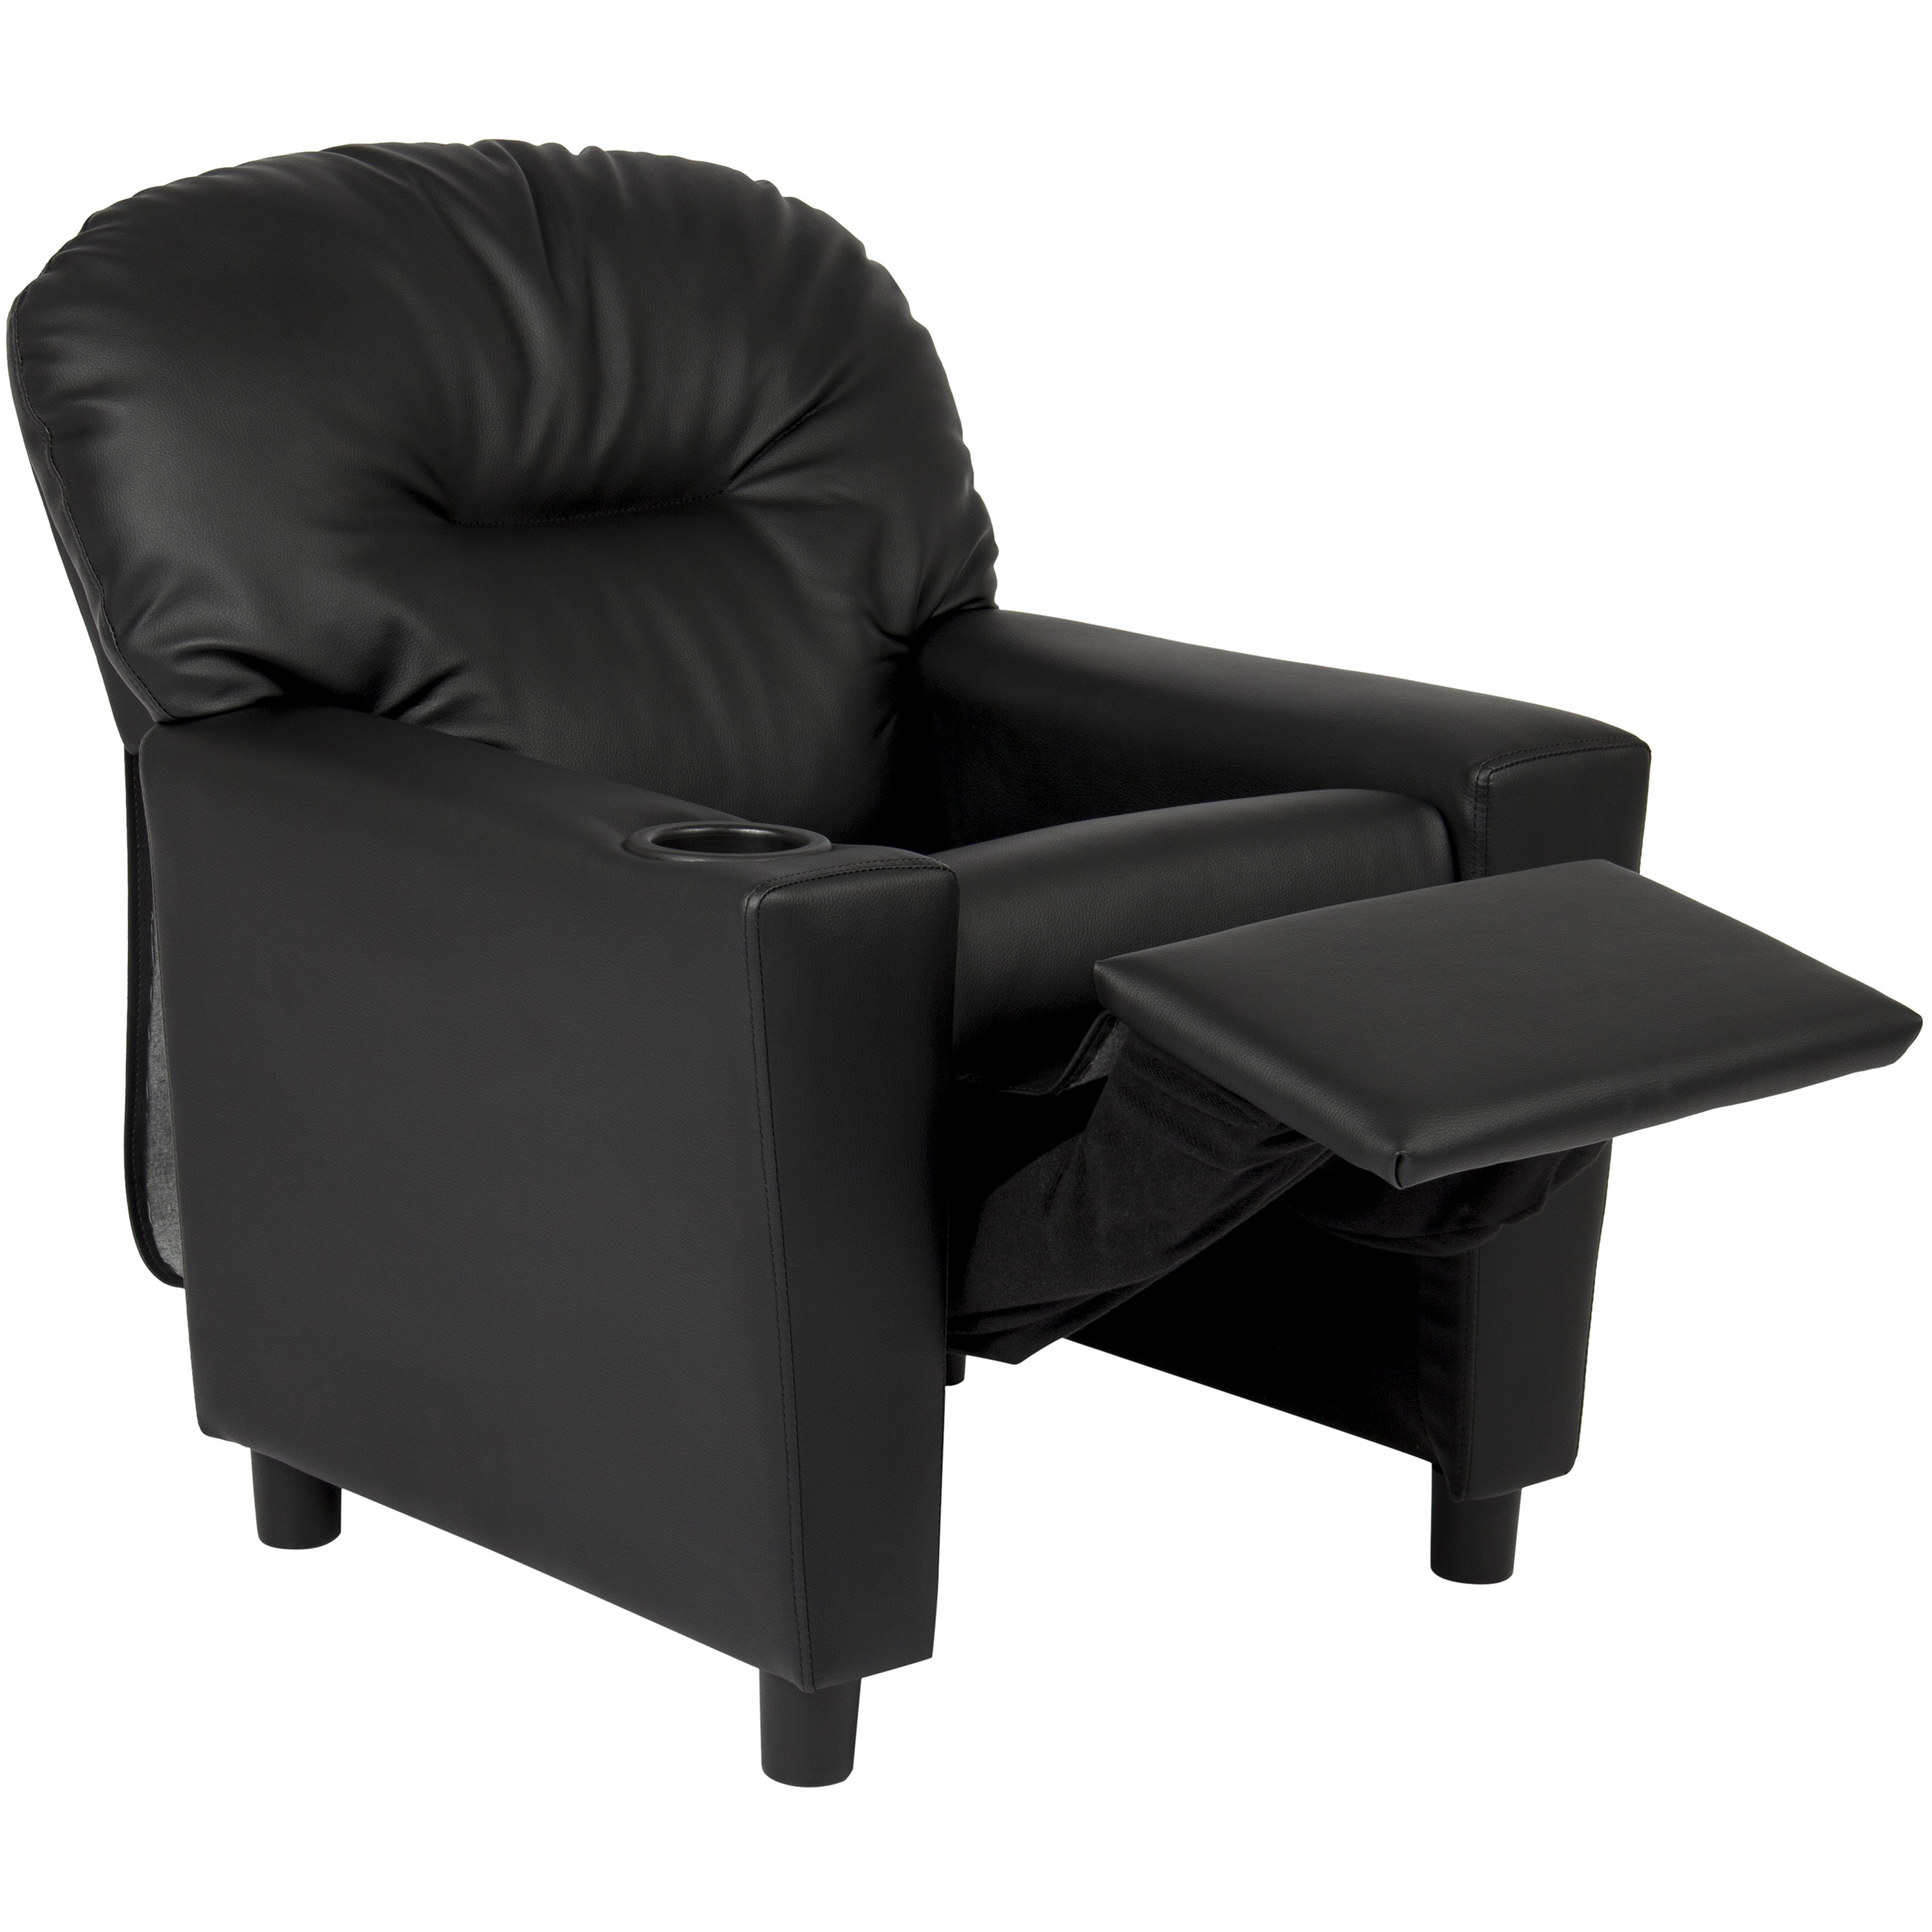 Best Choice Products Black Leather Kids Recliner Chair With Cup Holder